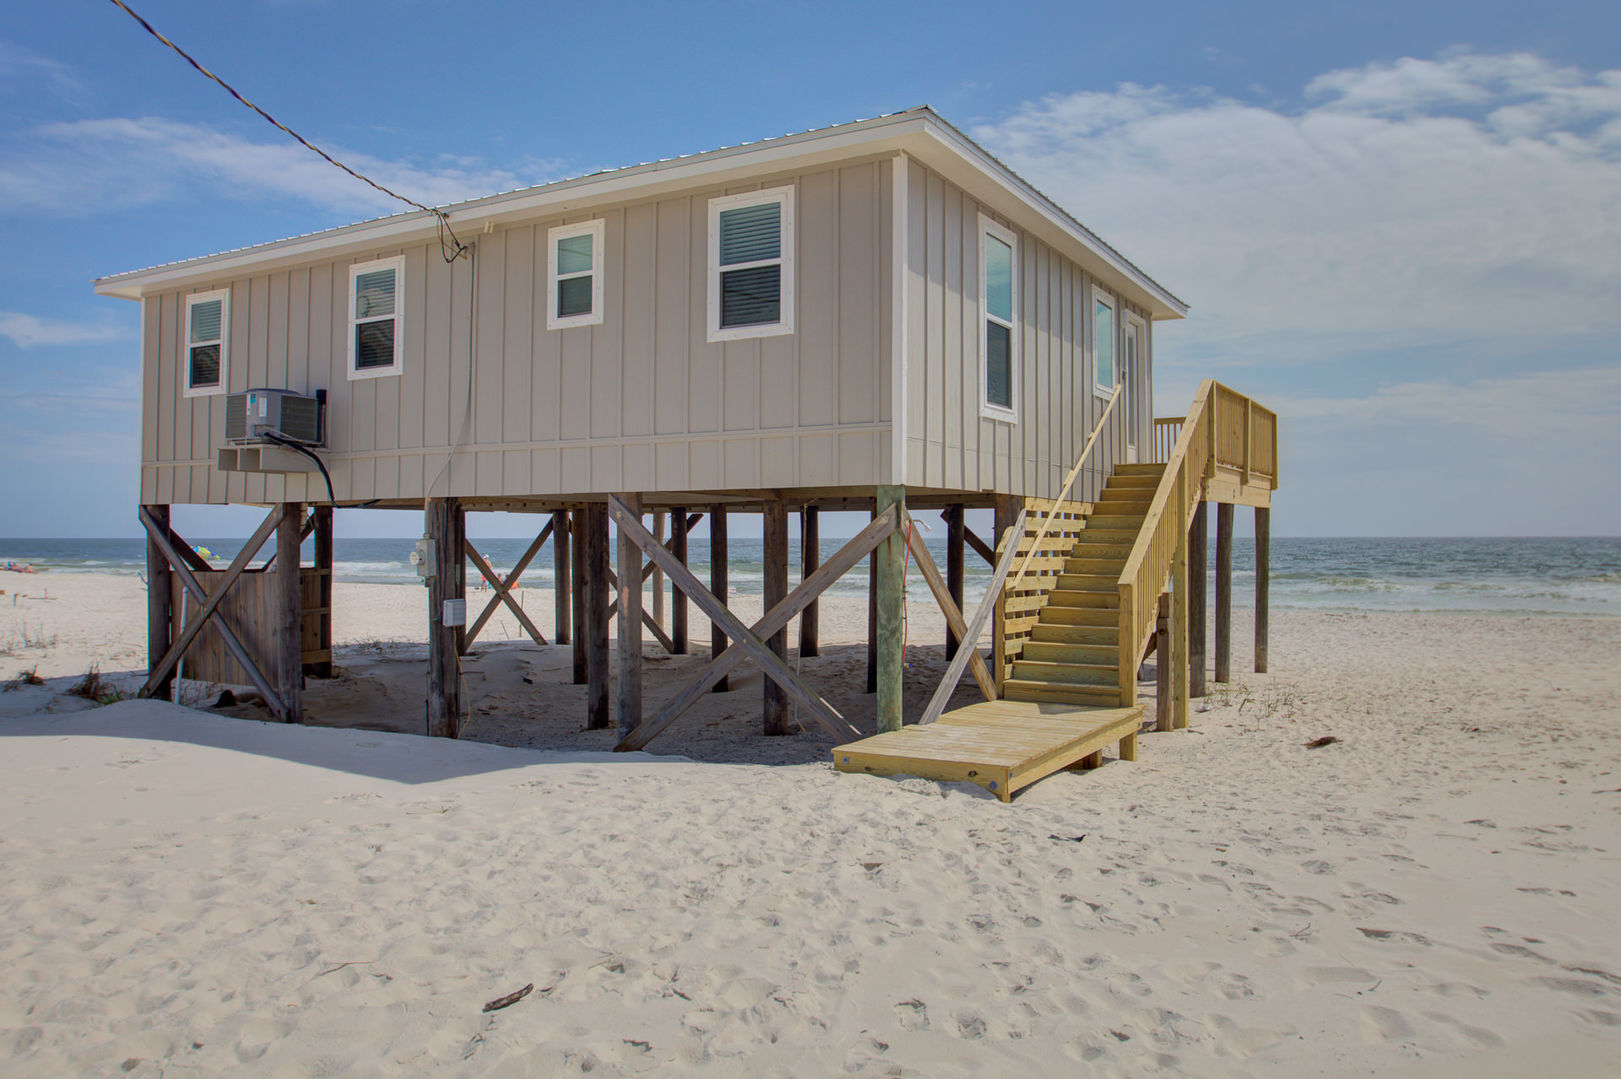 Thatll do Beach Front House Rental in Fort Morgan Alabama